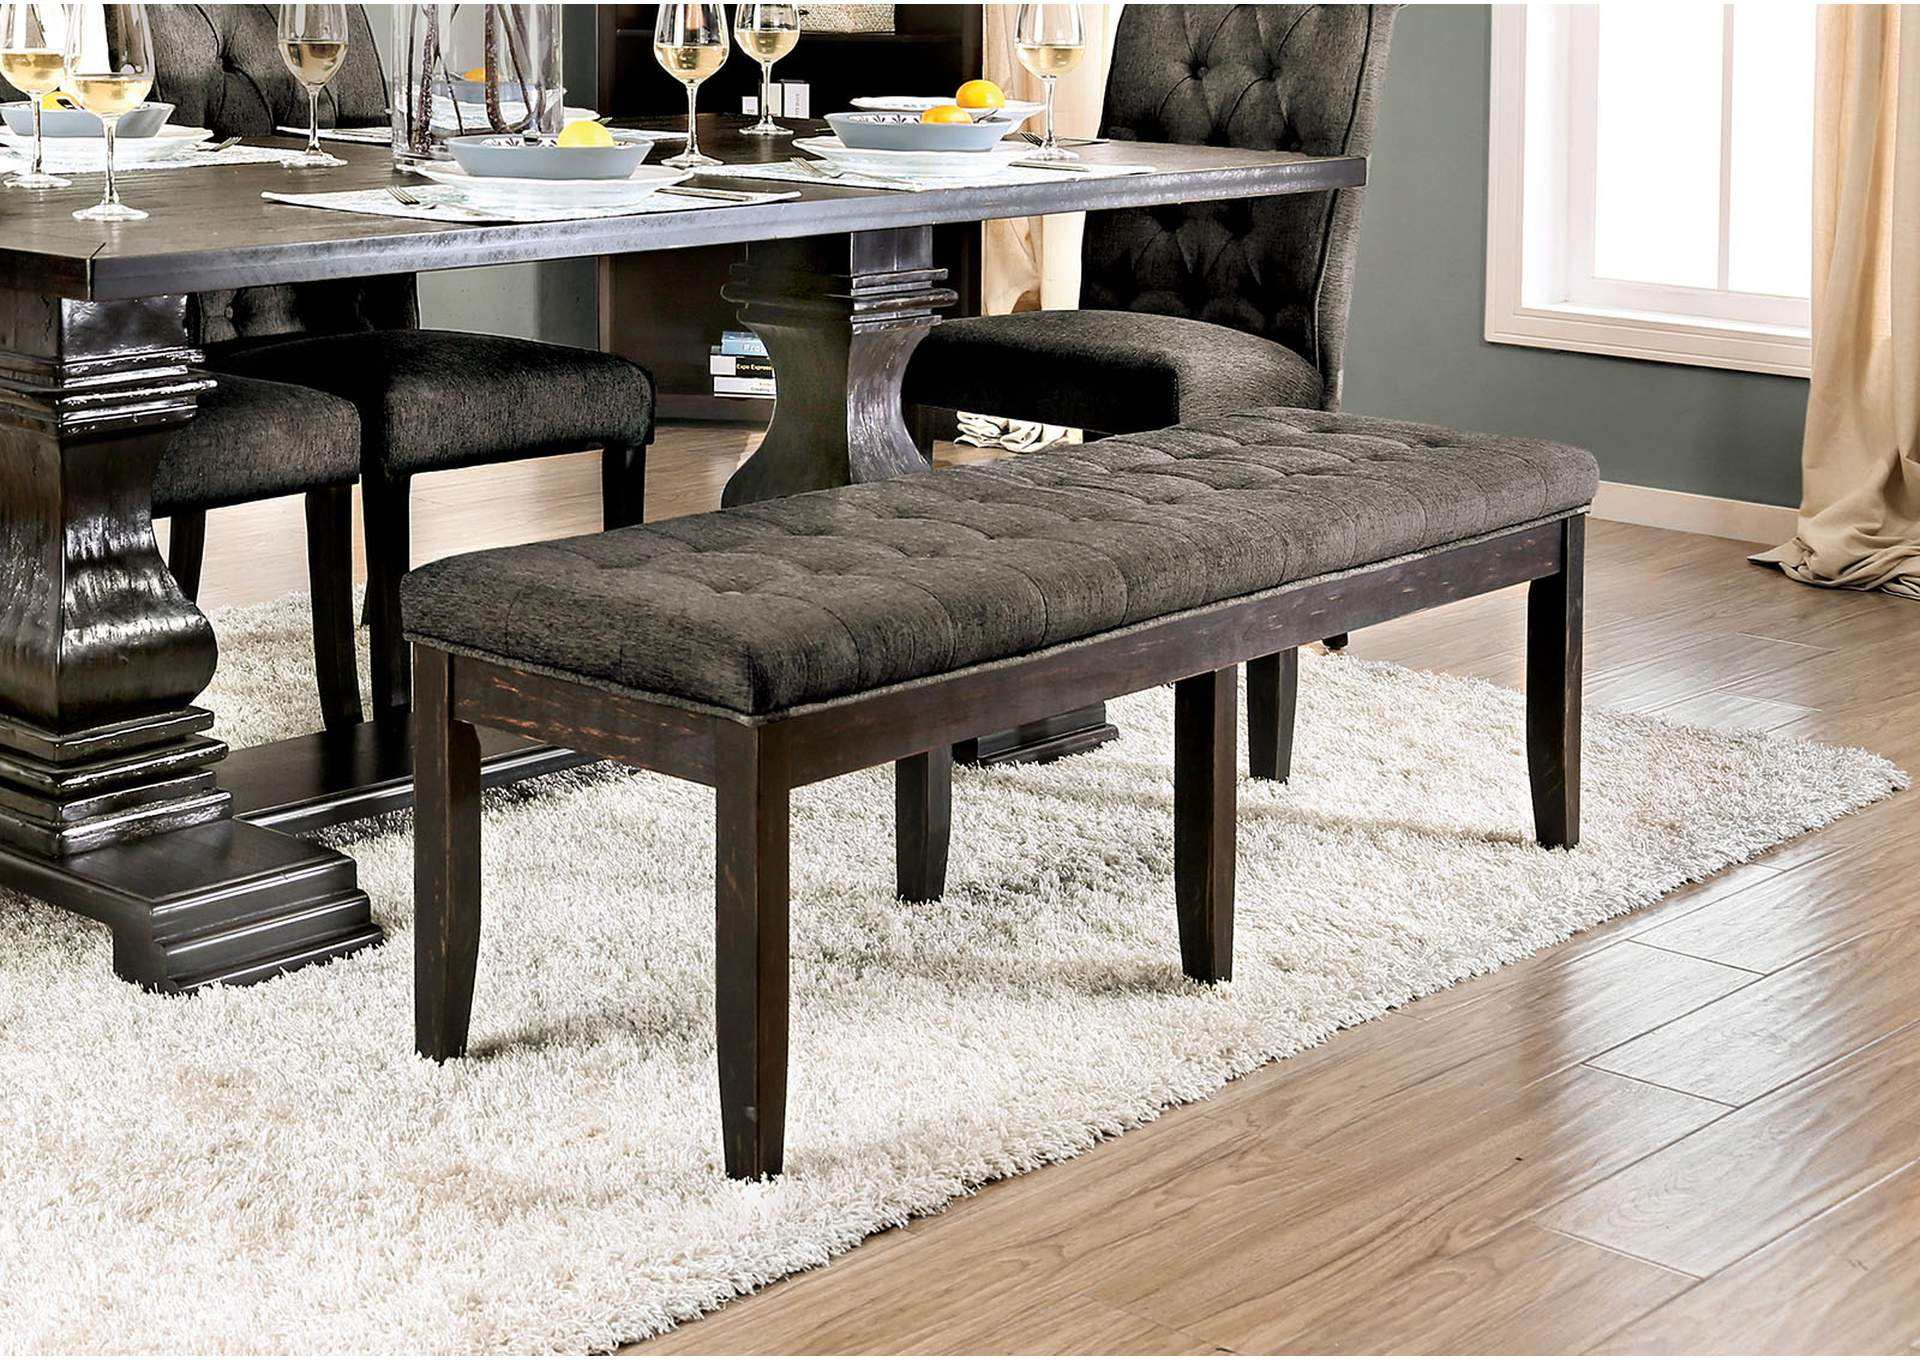 Nerissa Gray Upholstered Bench,Furniture of America